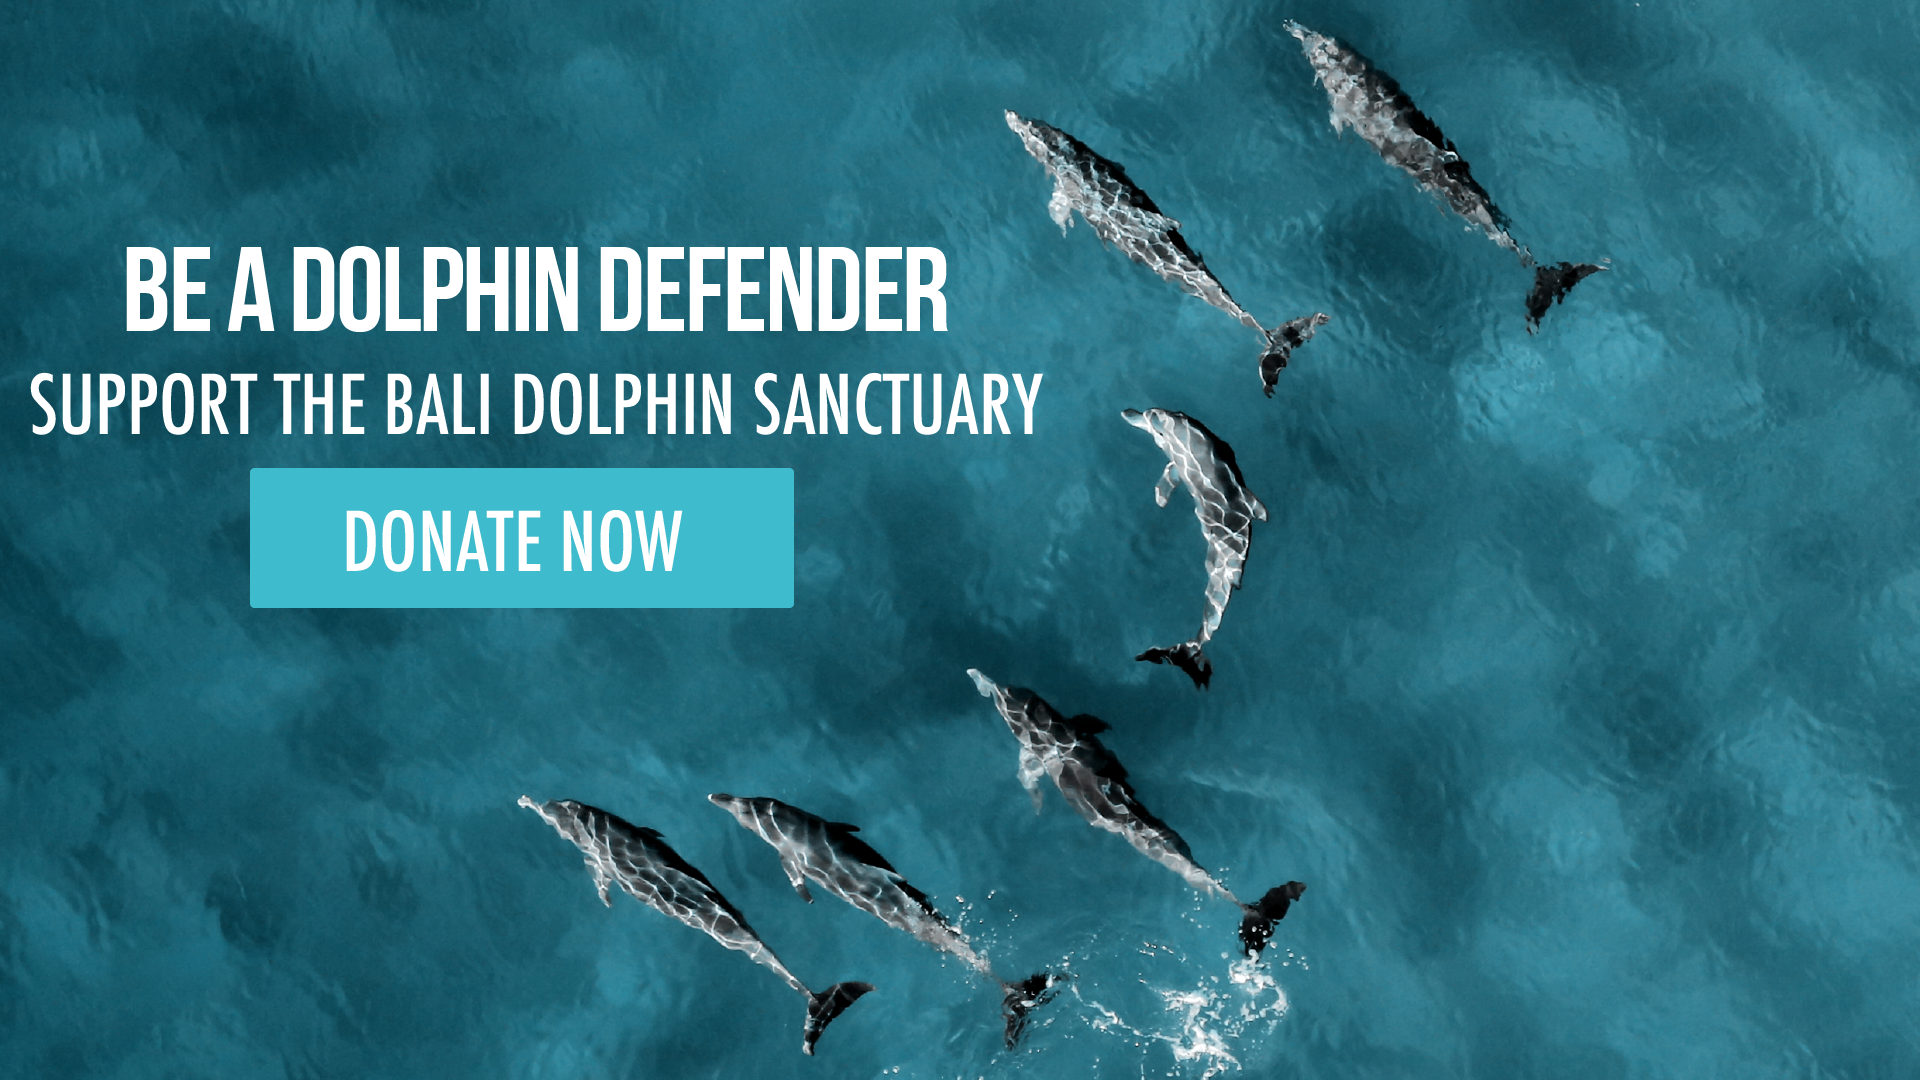 Be a Dolphin Defender and Donate Now to the Bali Dolphin Sanctuary